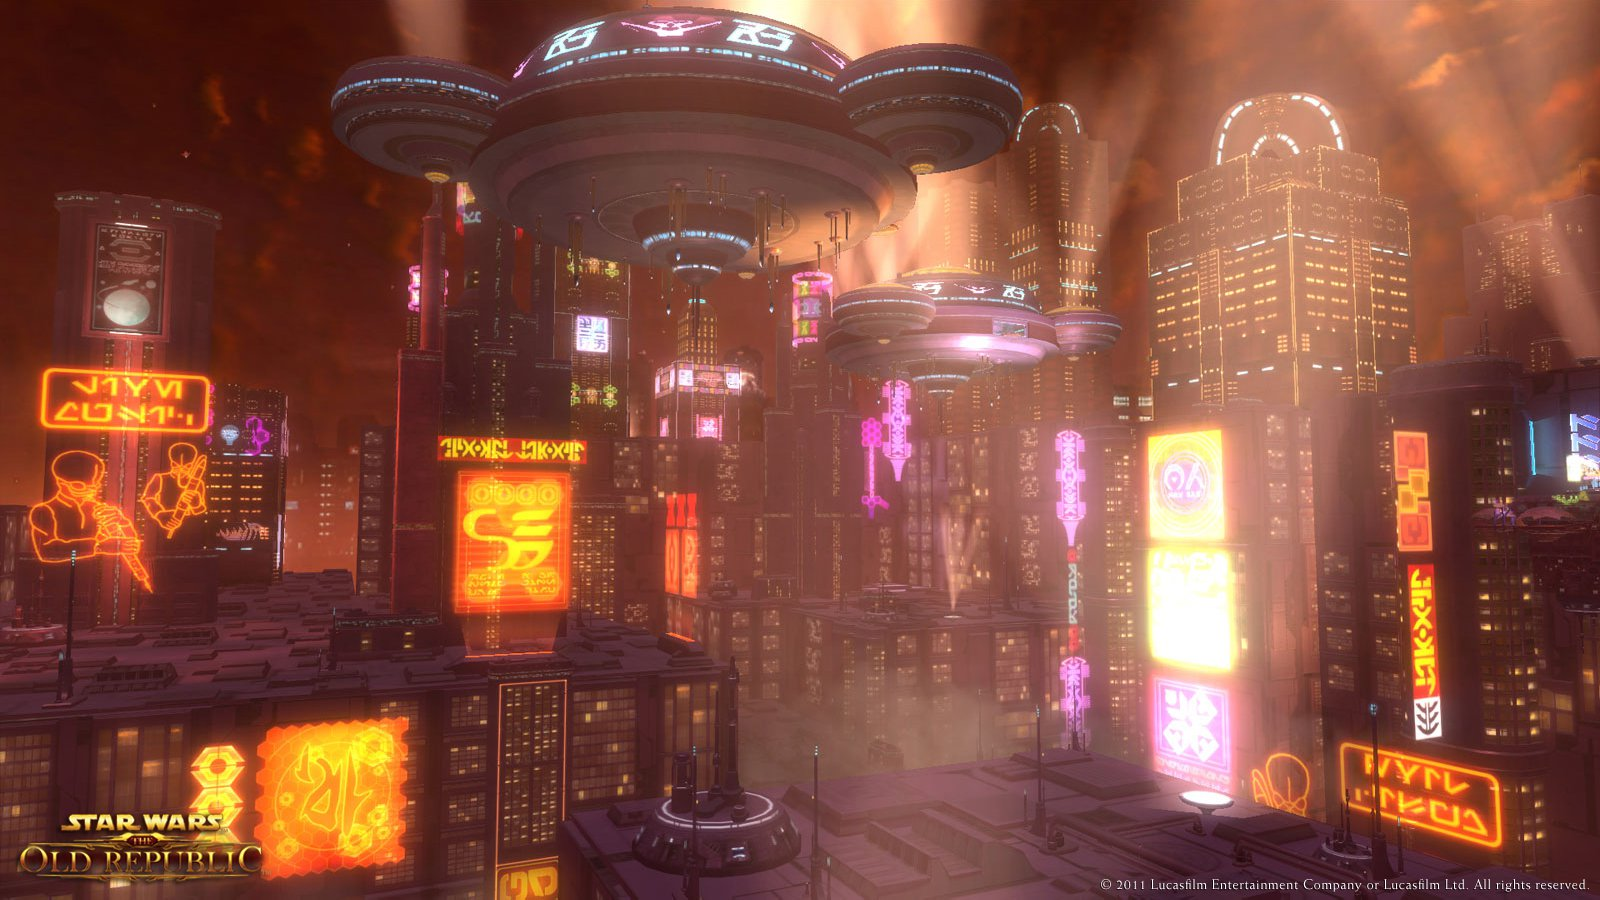 https://vignette.wikia.nocookie.net/swtor/images/d/d1/Nar_Shaddaa%27s_endless_cityscape.jpg/revision/latest?cb=20110710083857